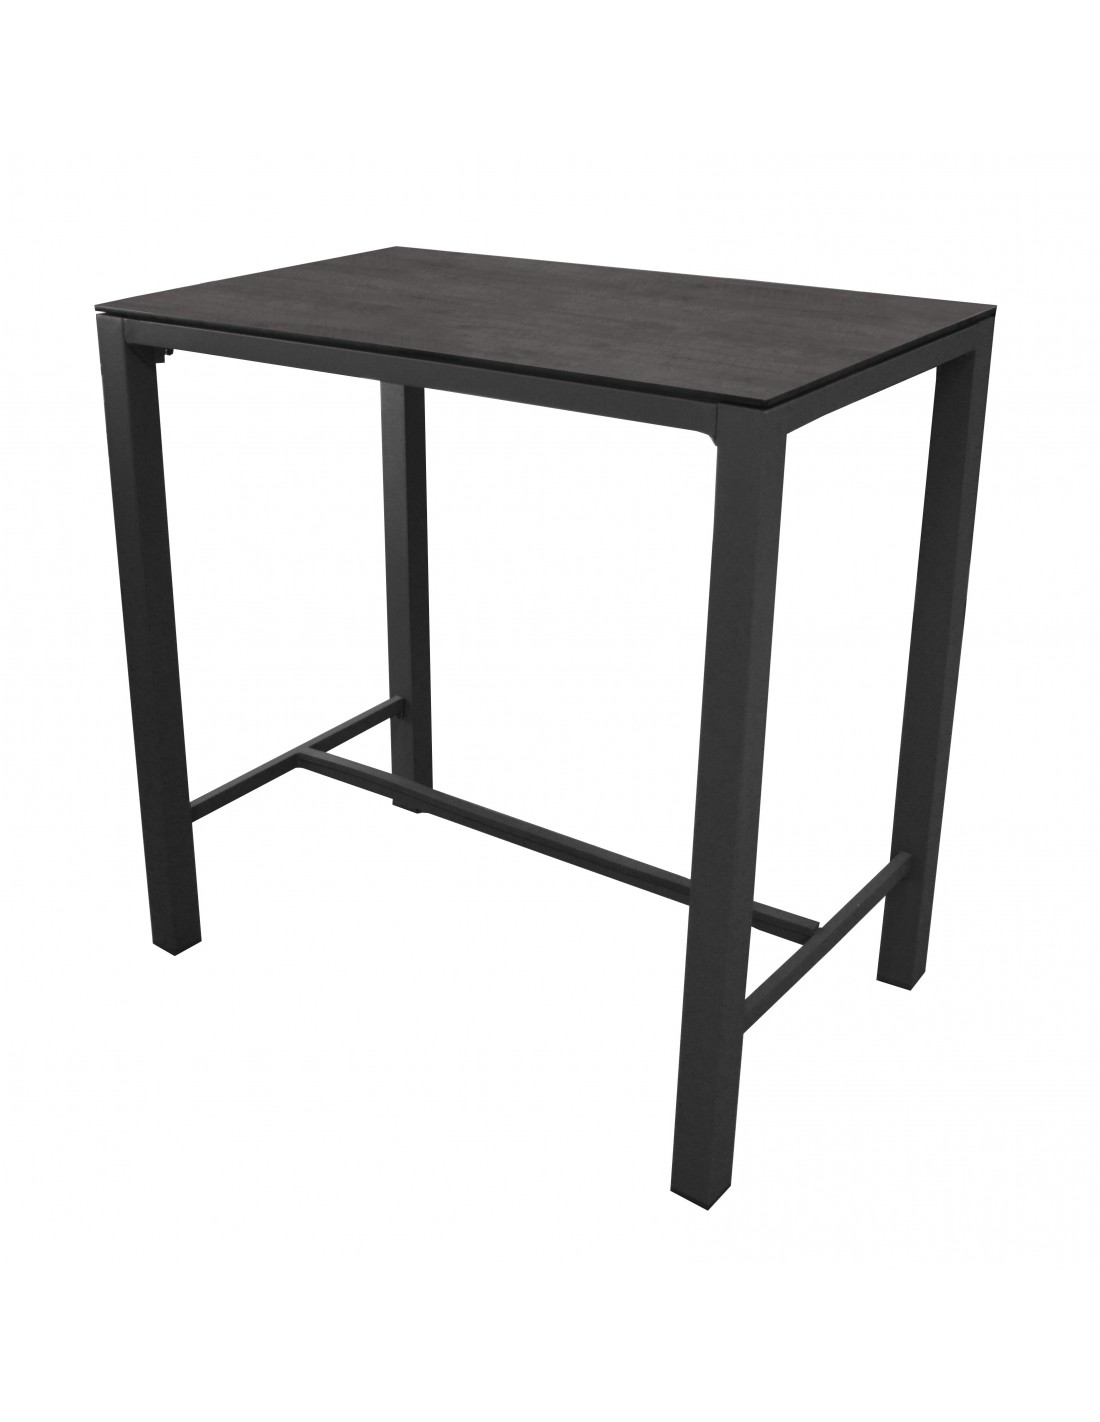 Table haute stoneo d 39 ext rieur aluminium et plateau hpl for Plateau table exterieur